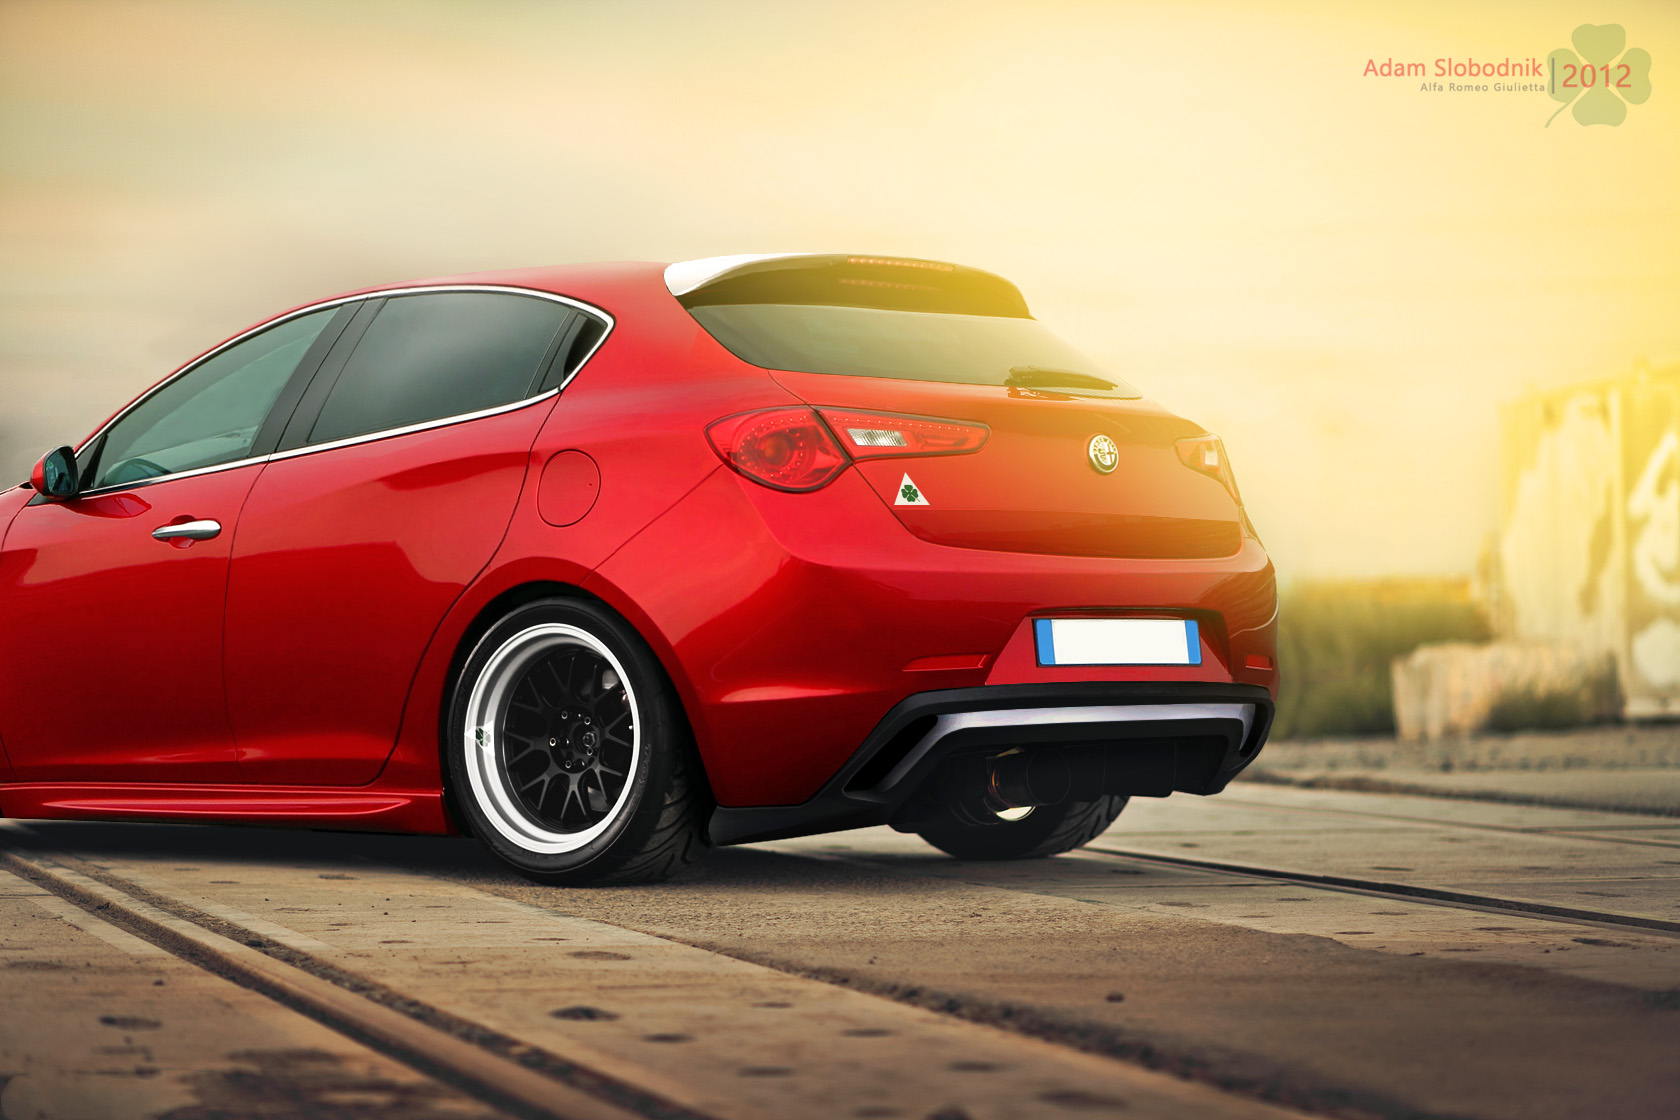 alfa romeo giulietta pictures posters news and videos on your pursuit hobbies interests. Black Bedroom Furniture Sets. Home Design Ideas